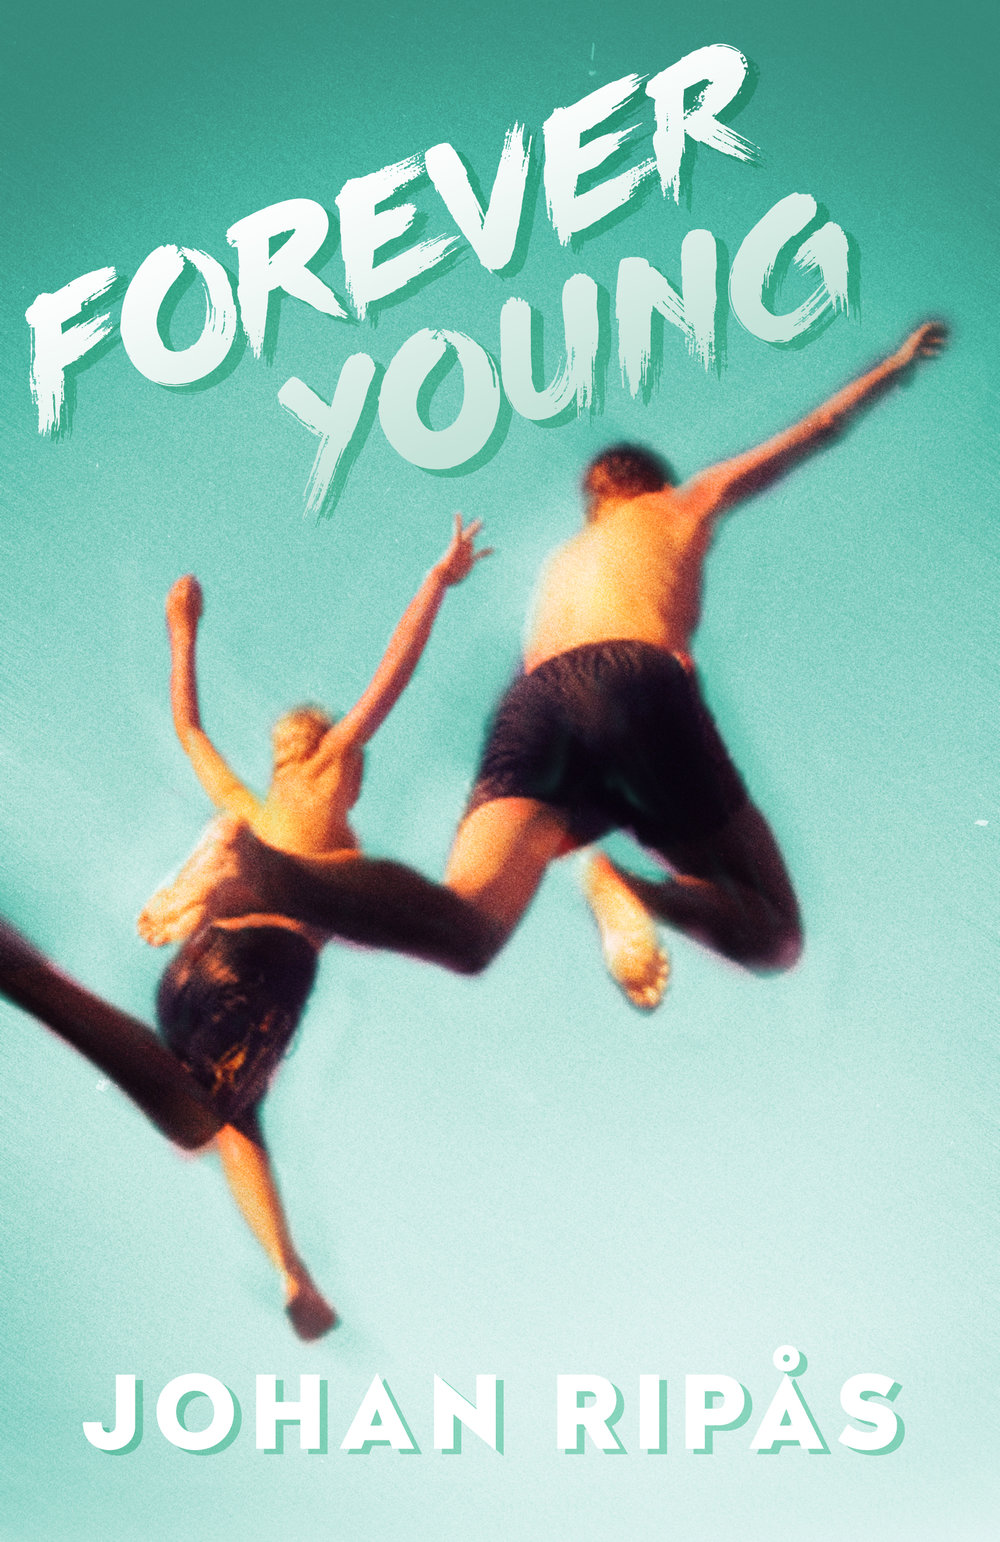 foreveryoung-inb.jpeg